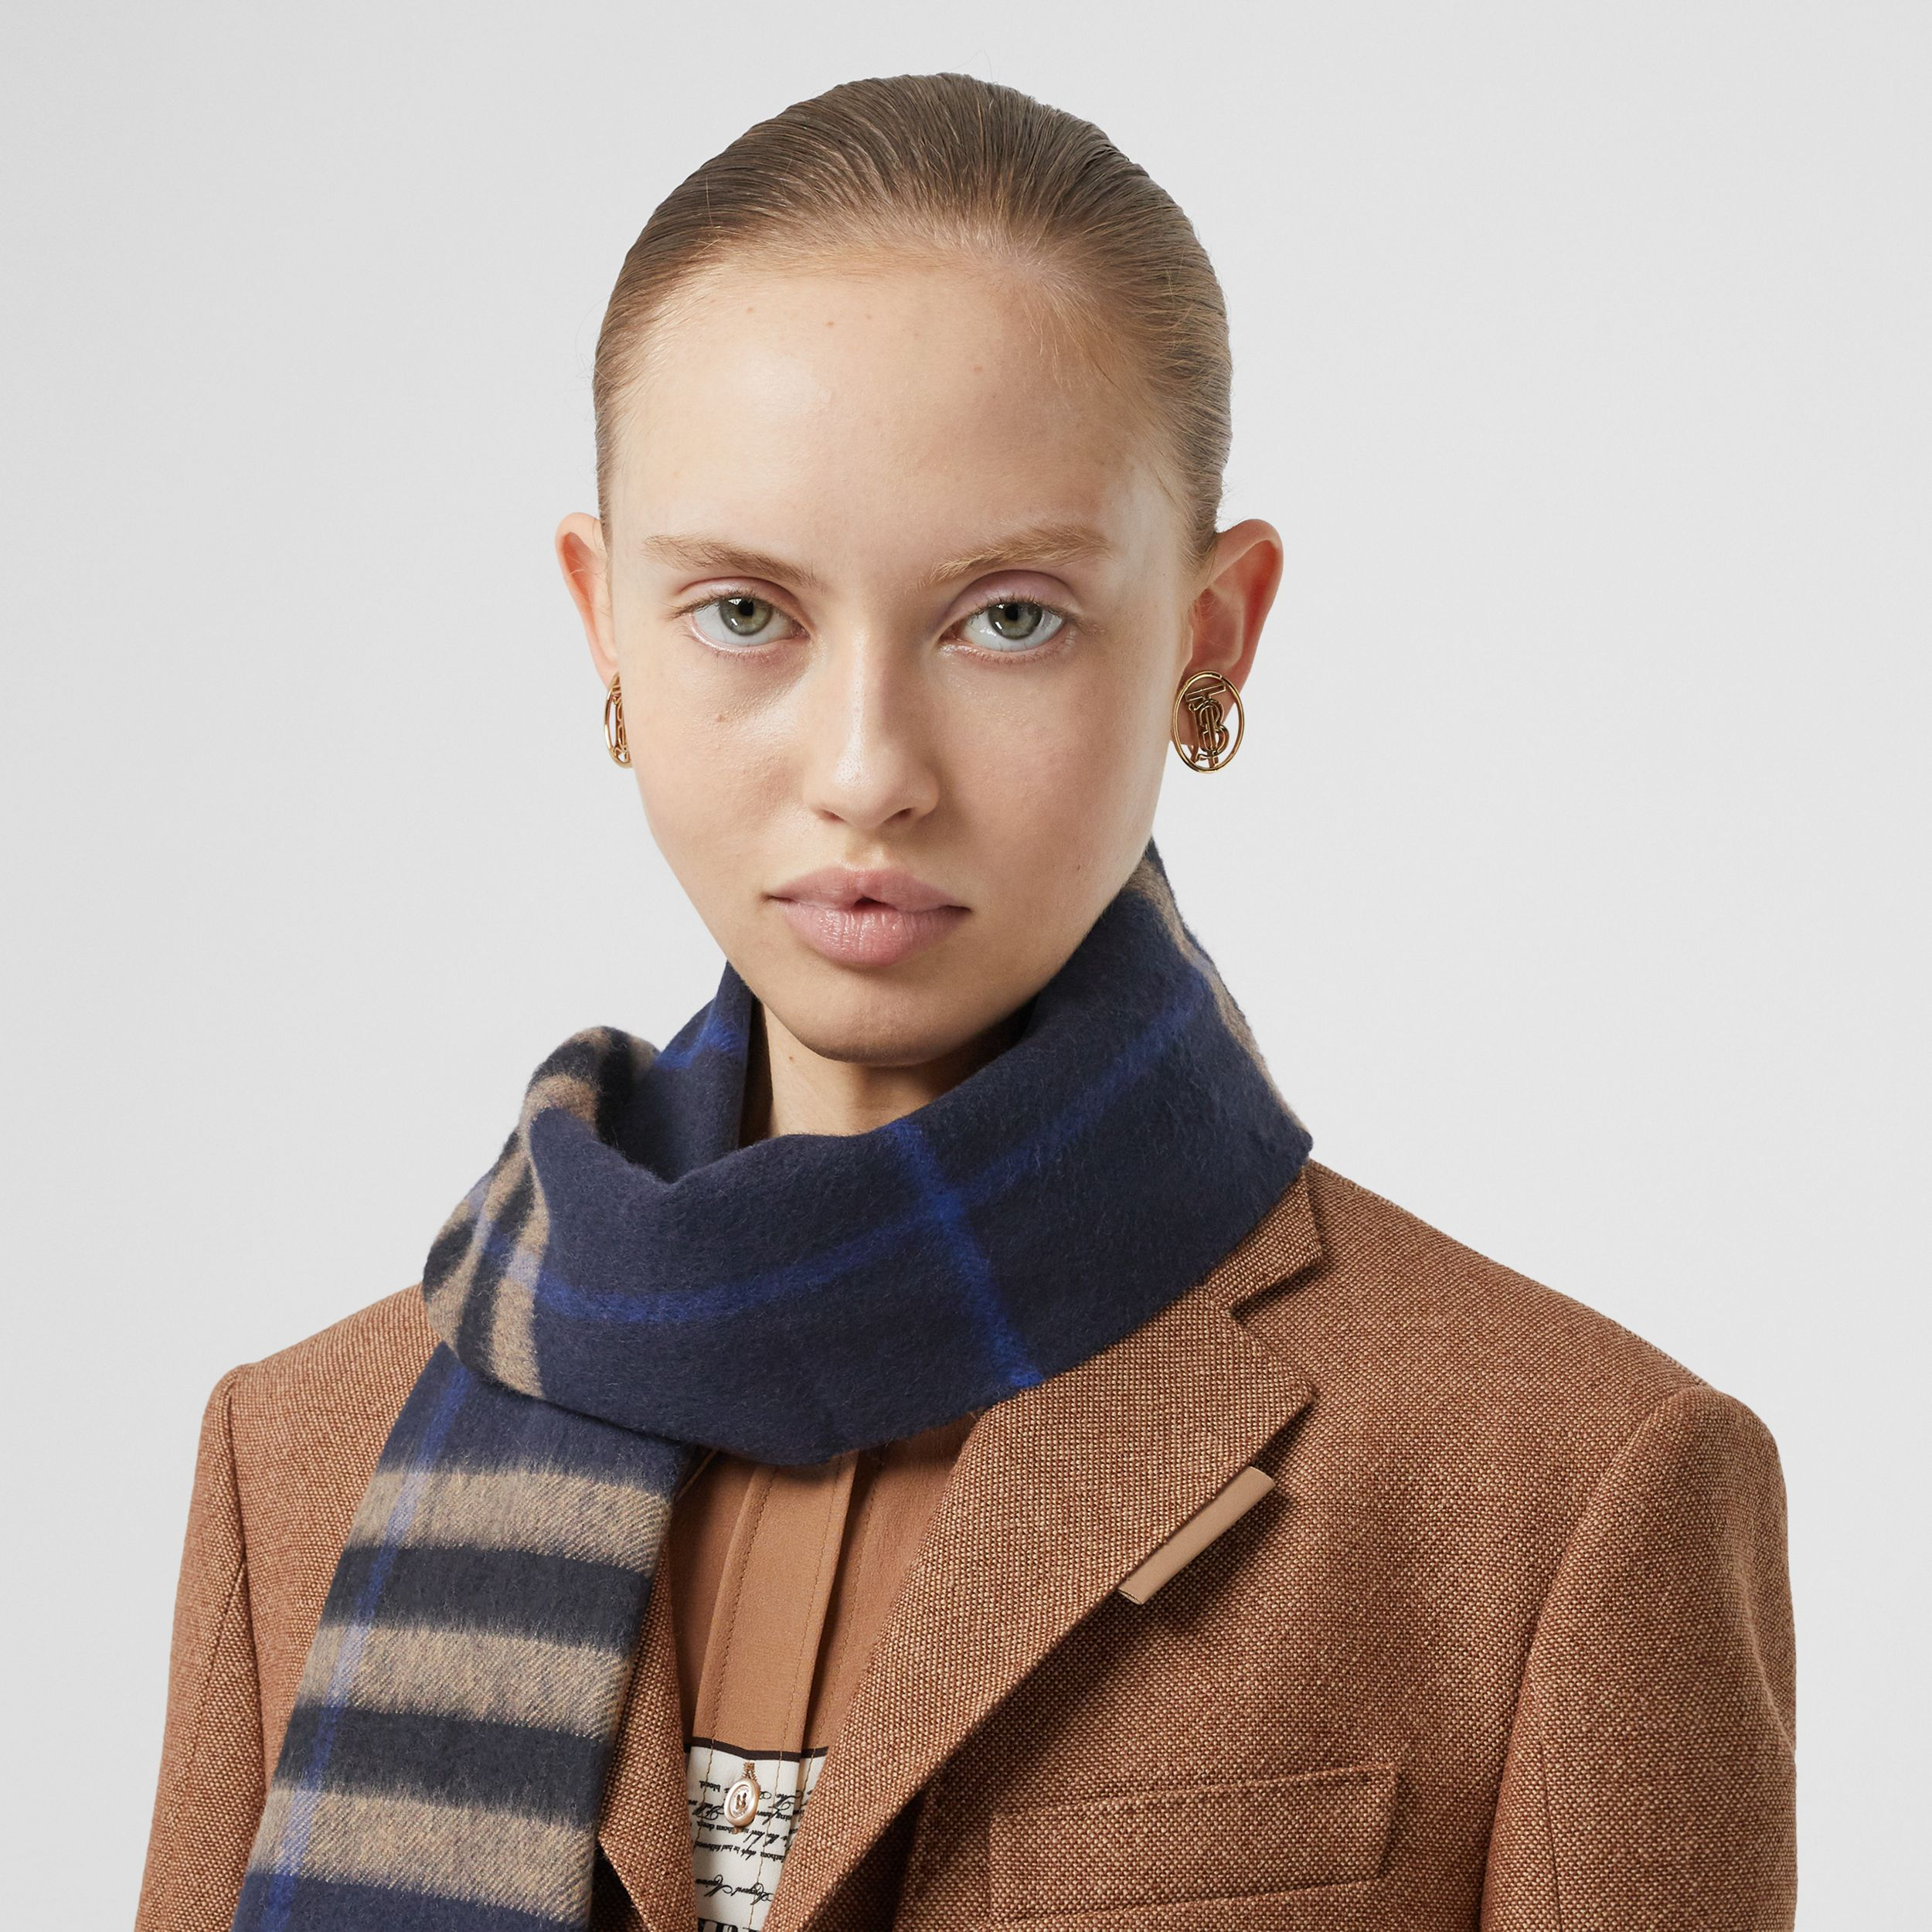 The Classic Check Cashmere Scarf in Indigo / Mid Camel | Burberry - 3